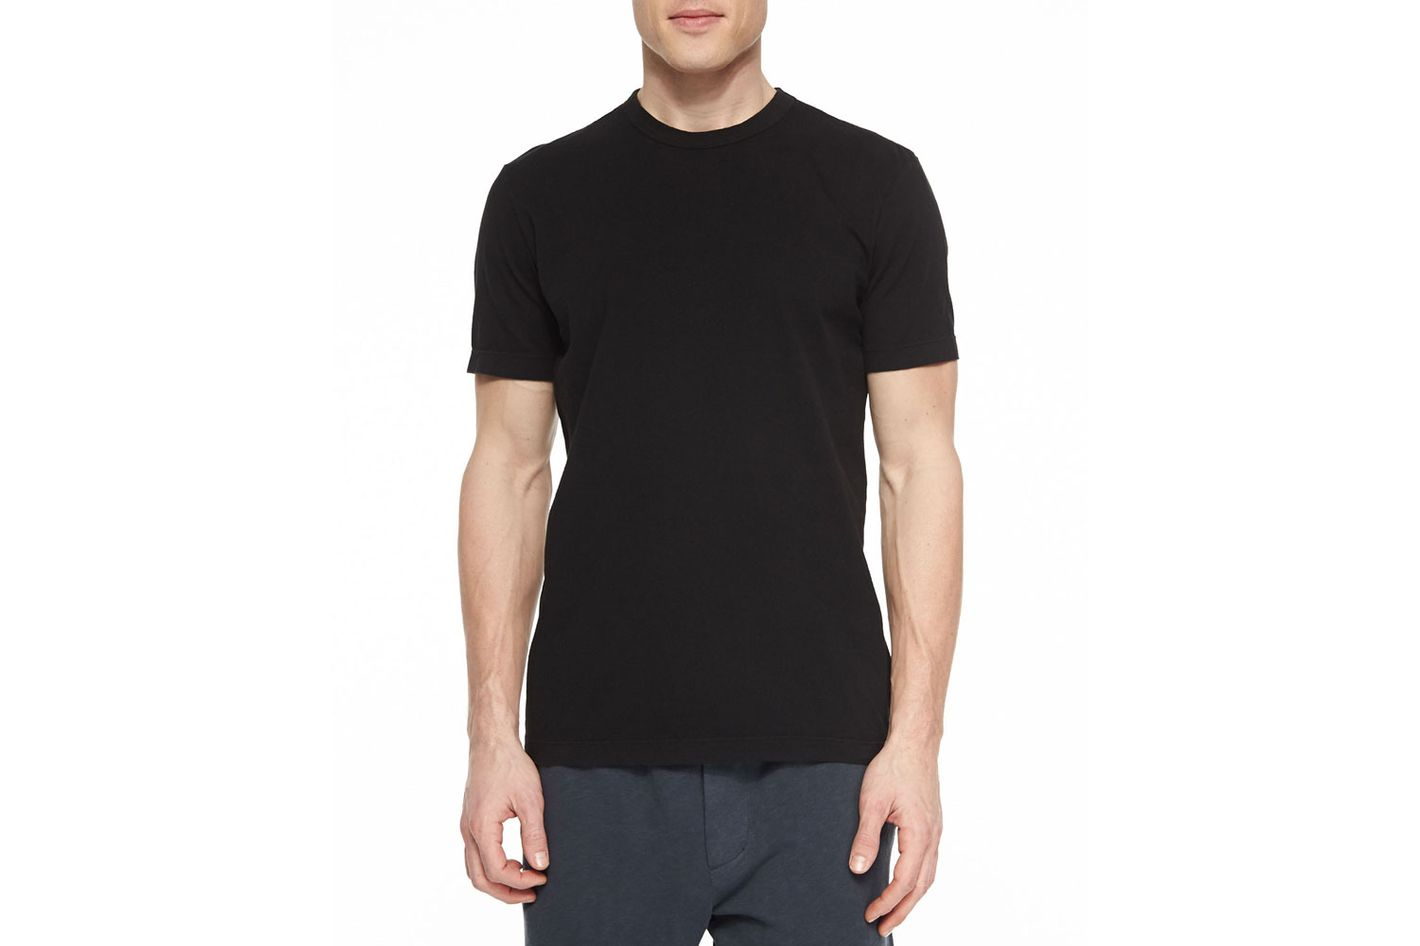 Black t shirt mens - Other Black T Shirts I Love